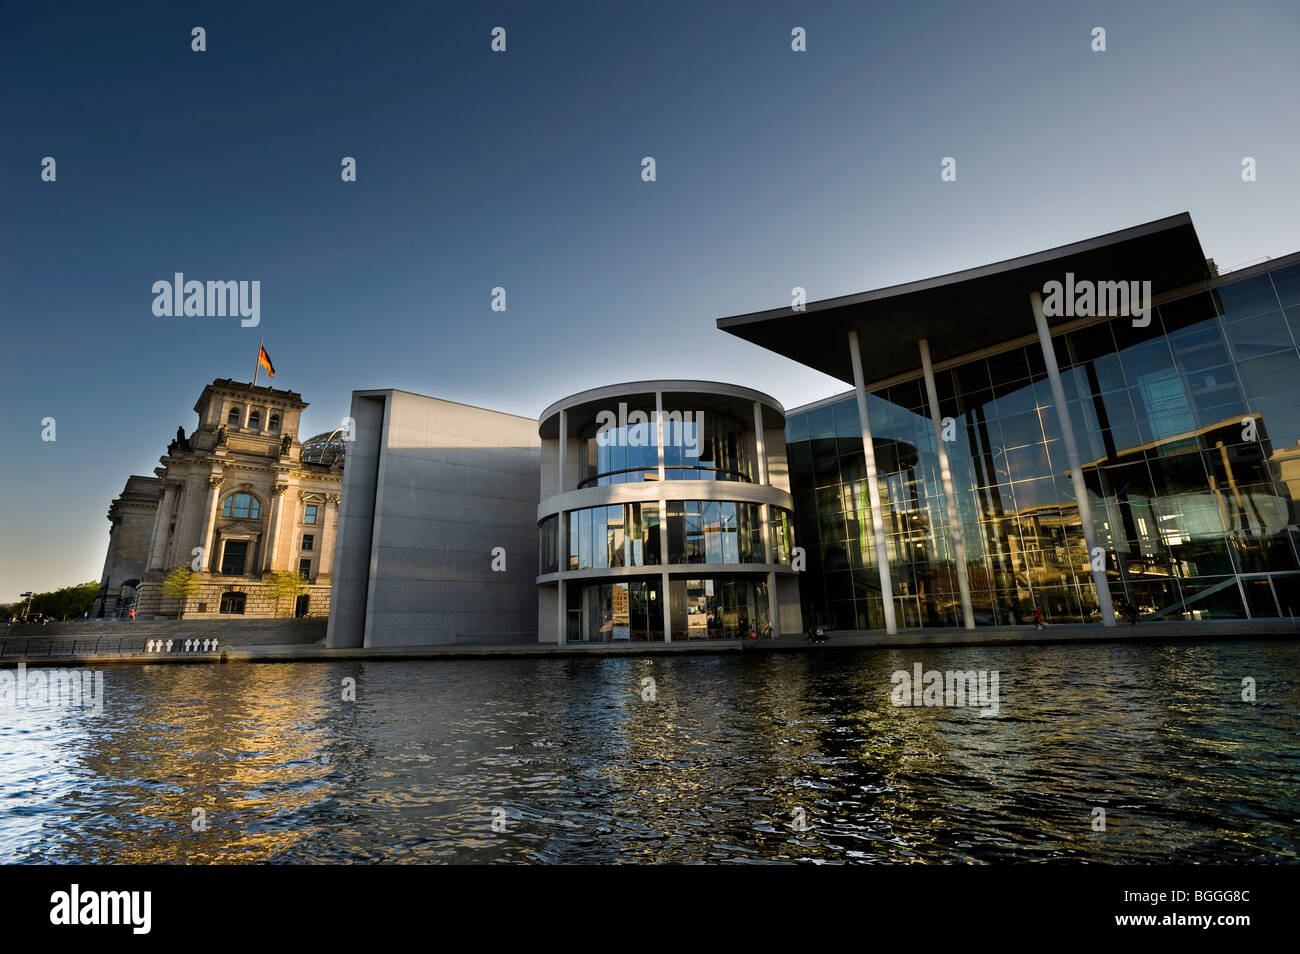 Reichstag Building and Paul Loebe House, Spree River, Berlin, Germany, Europe - Stock Image